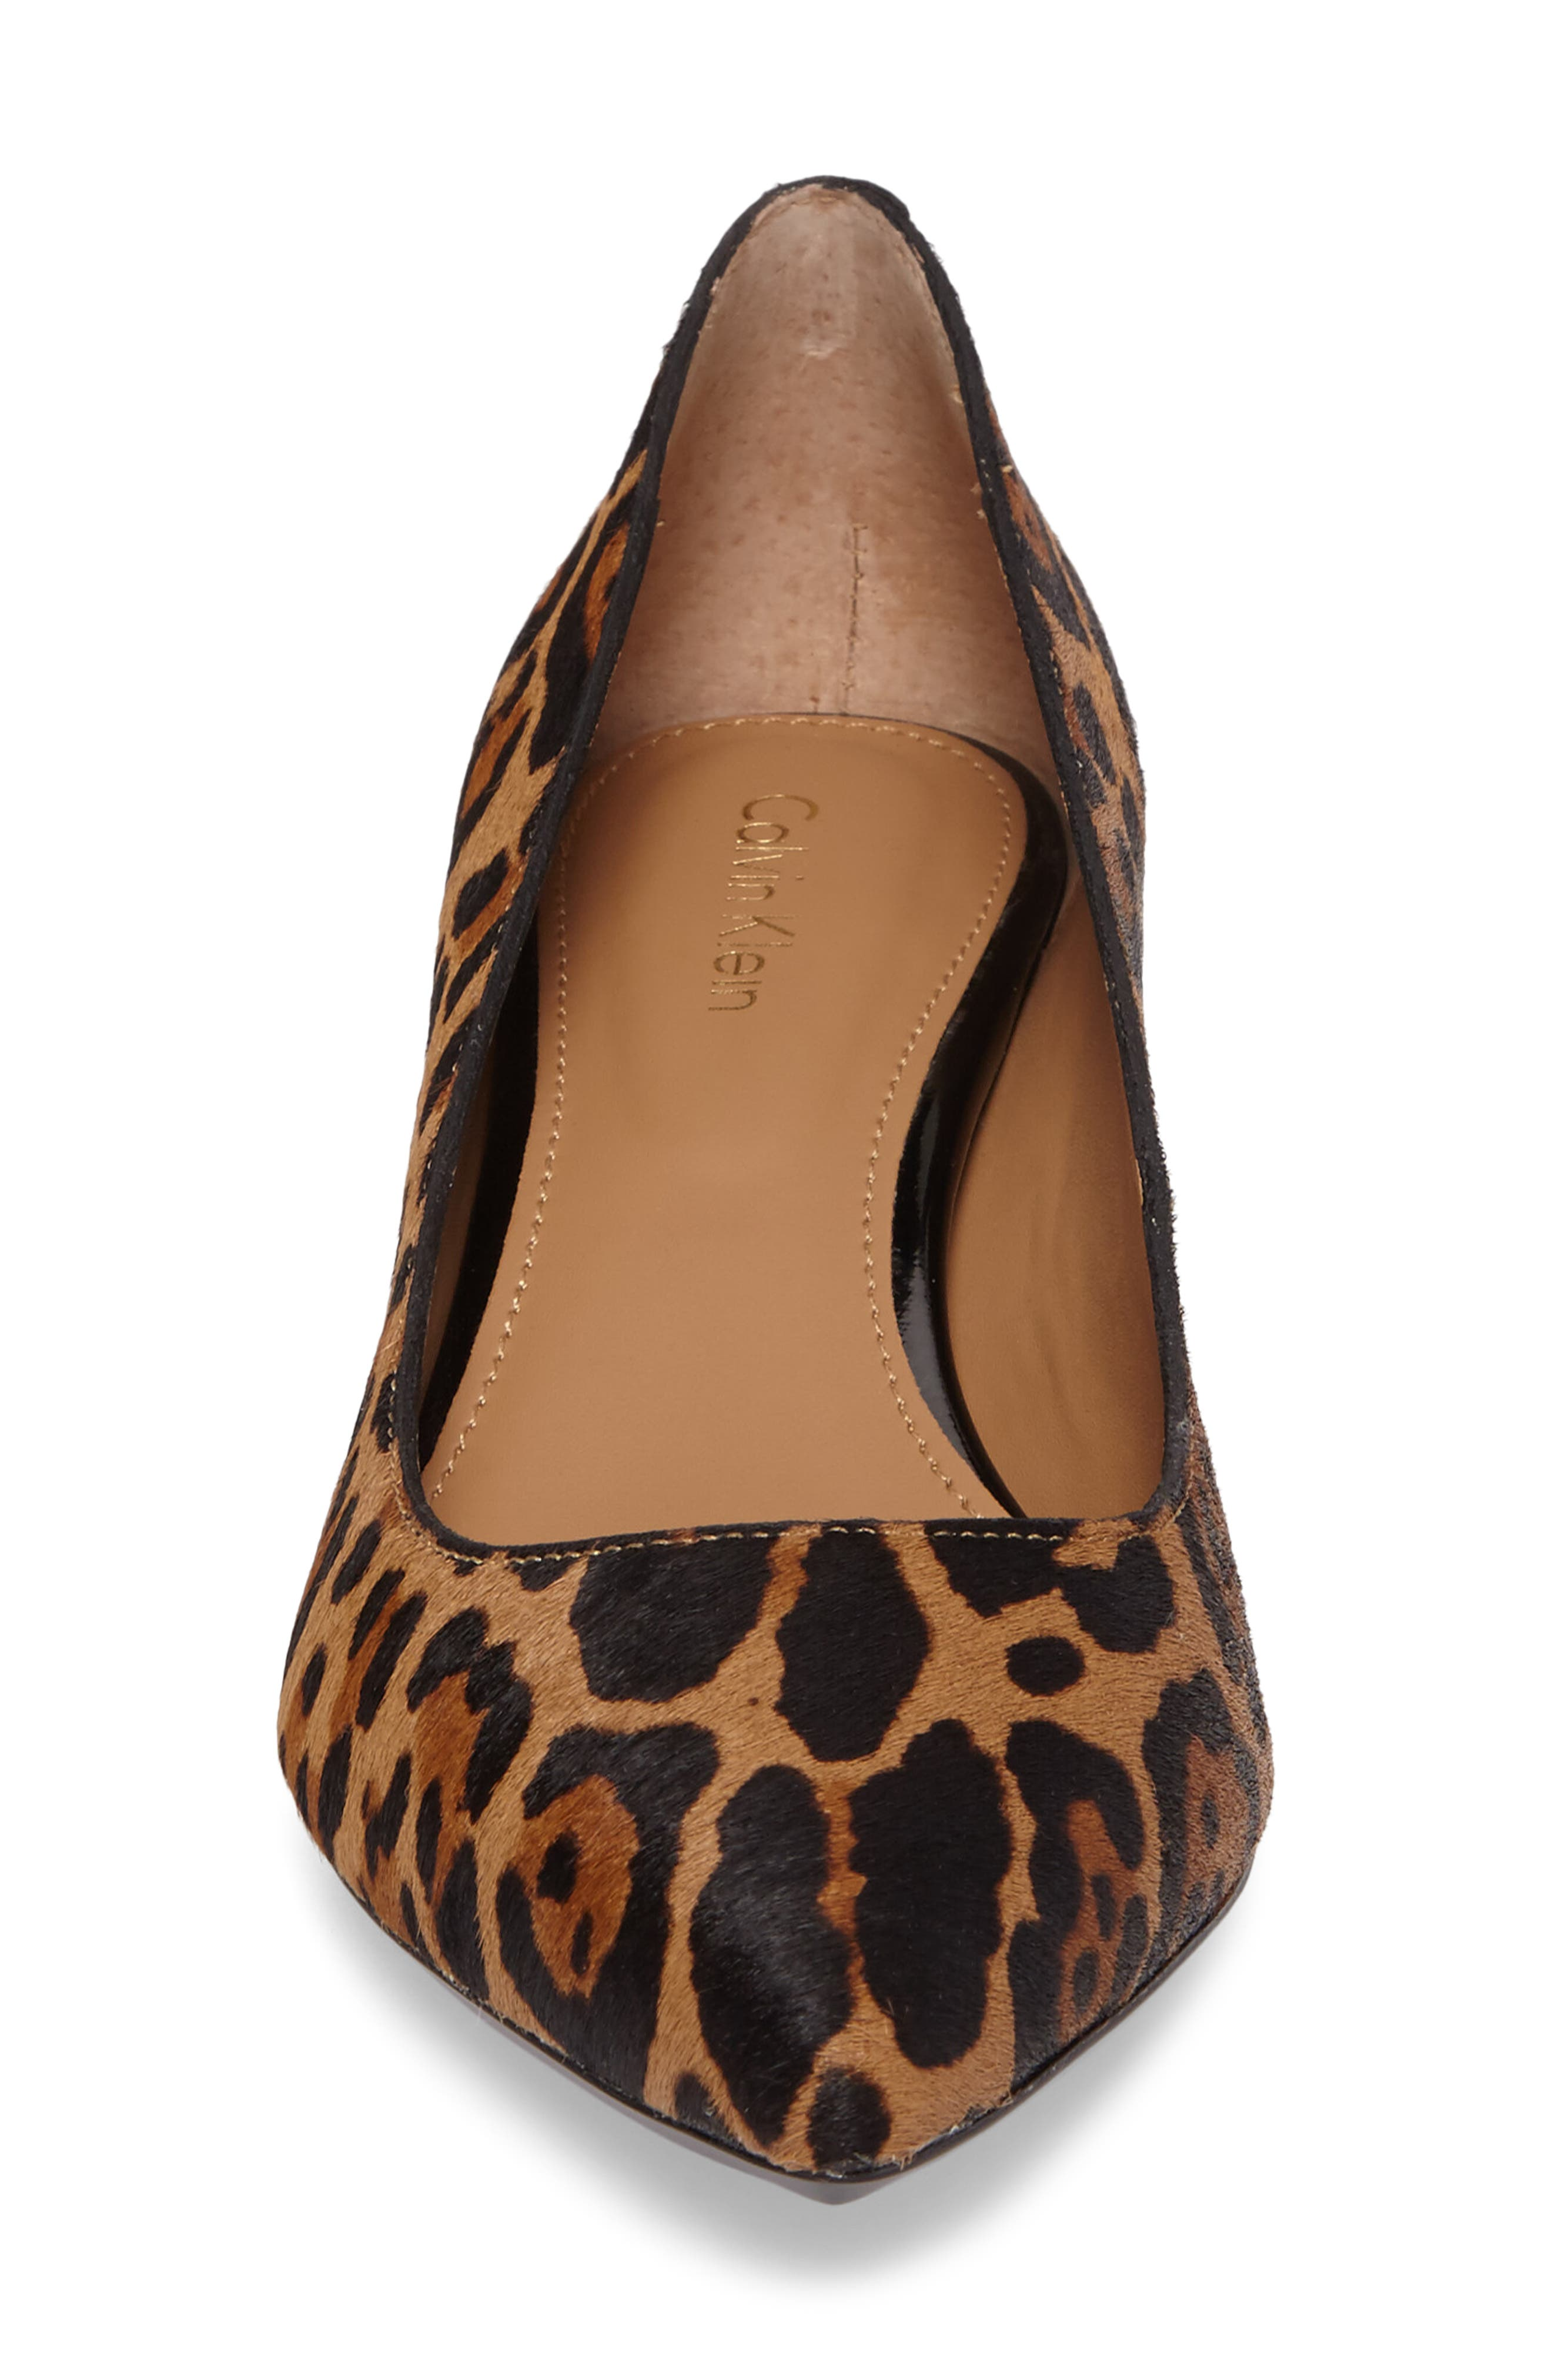 Genoveva Pump,                             Alternate thumbnail 4, color,                             Natural Leopard Hair Calf